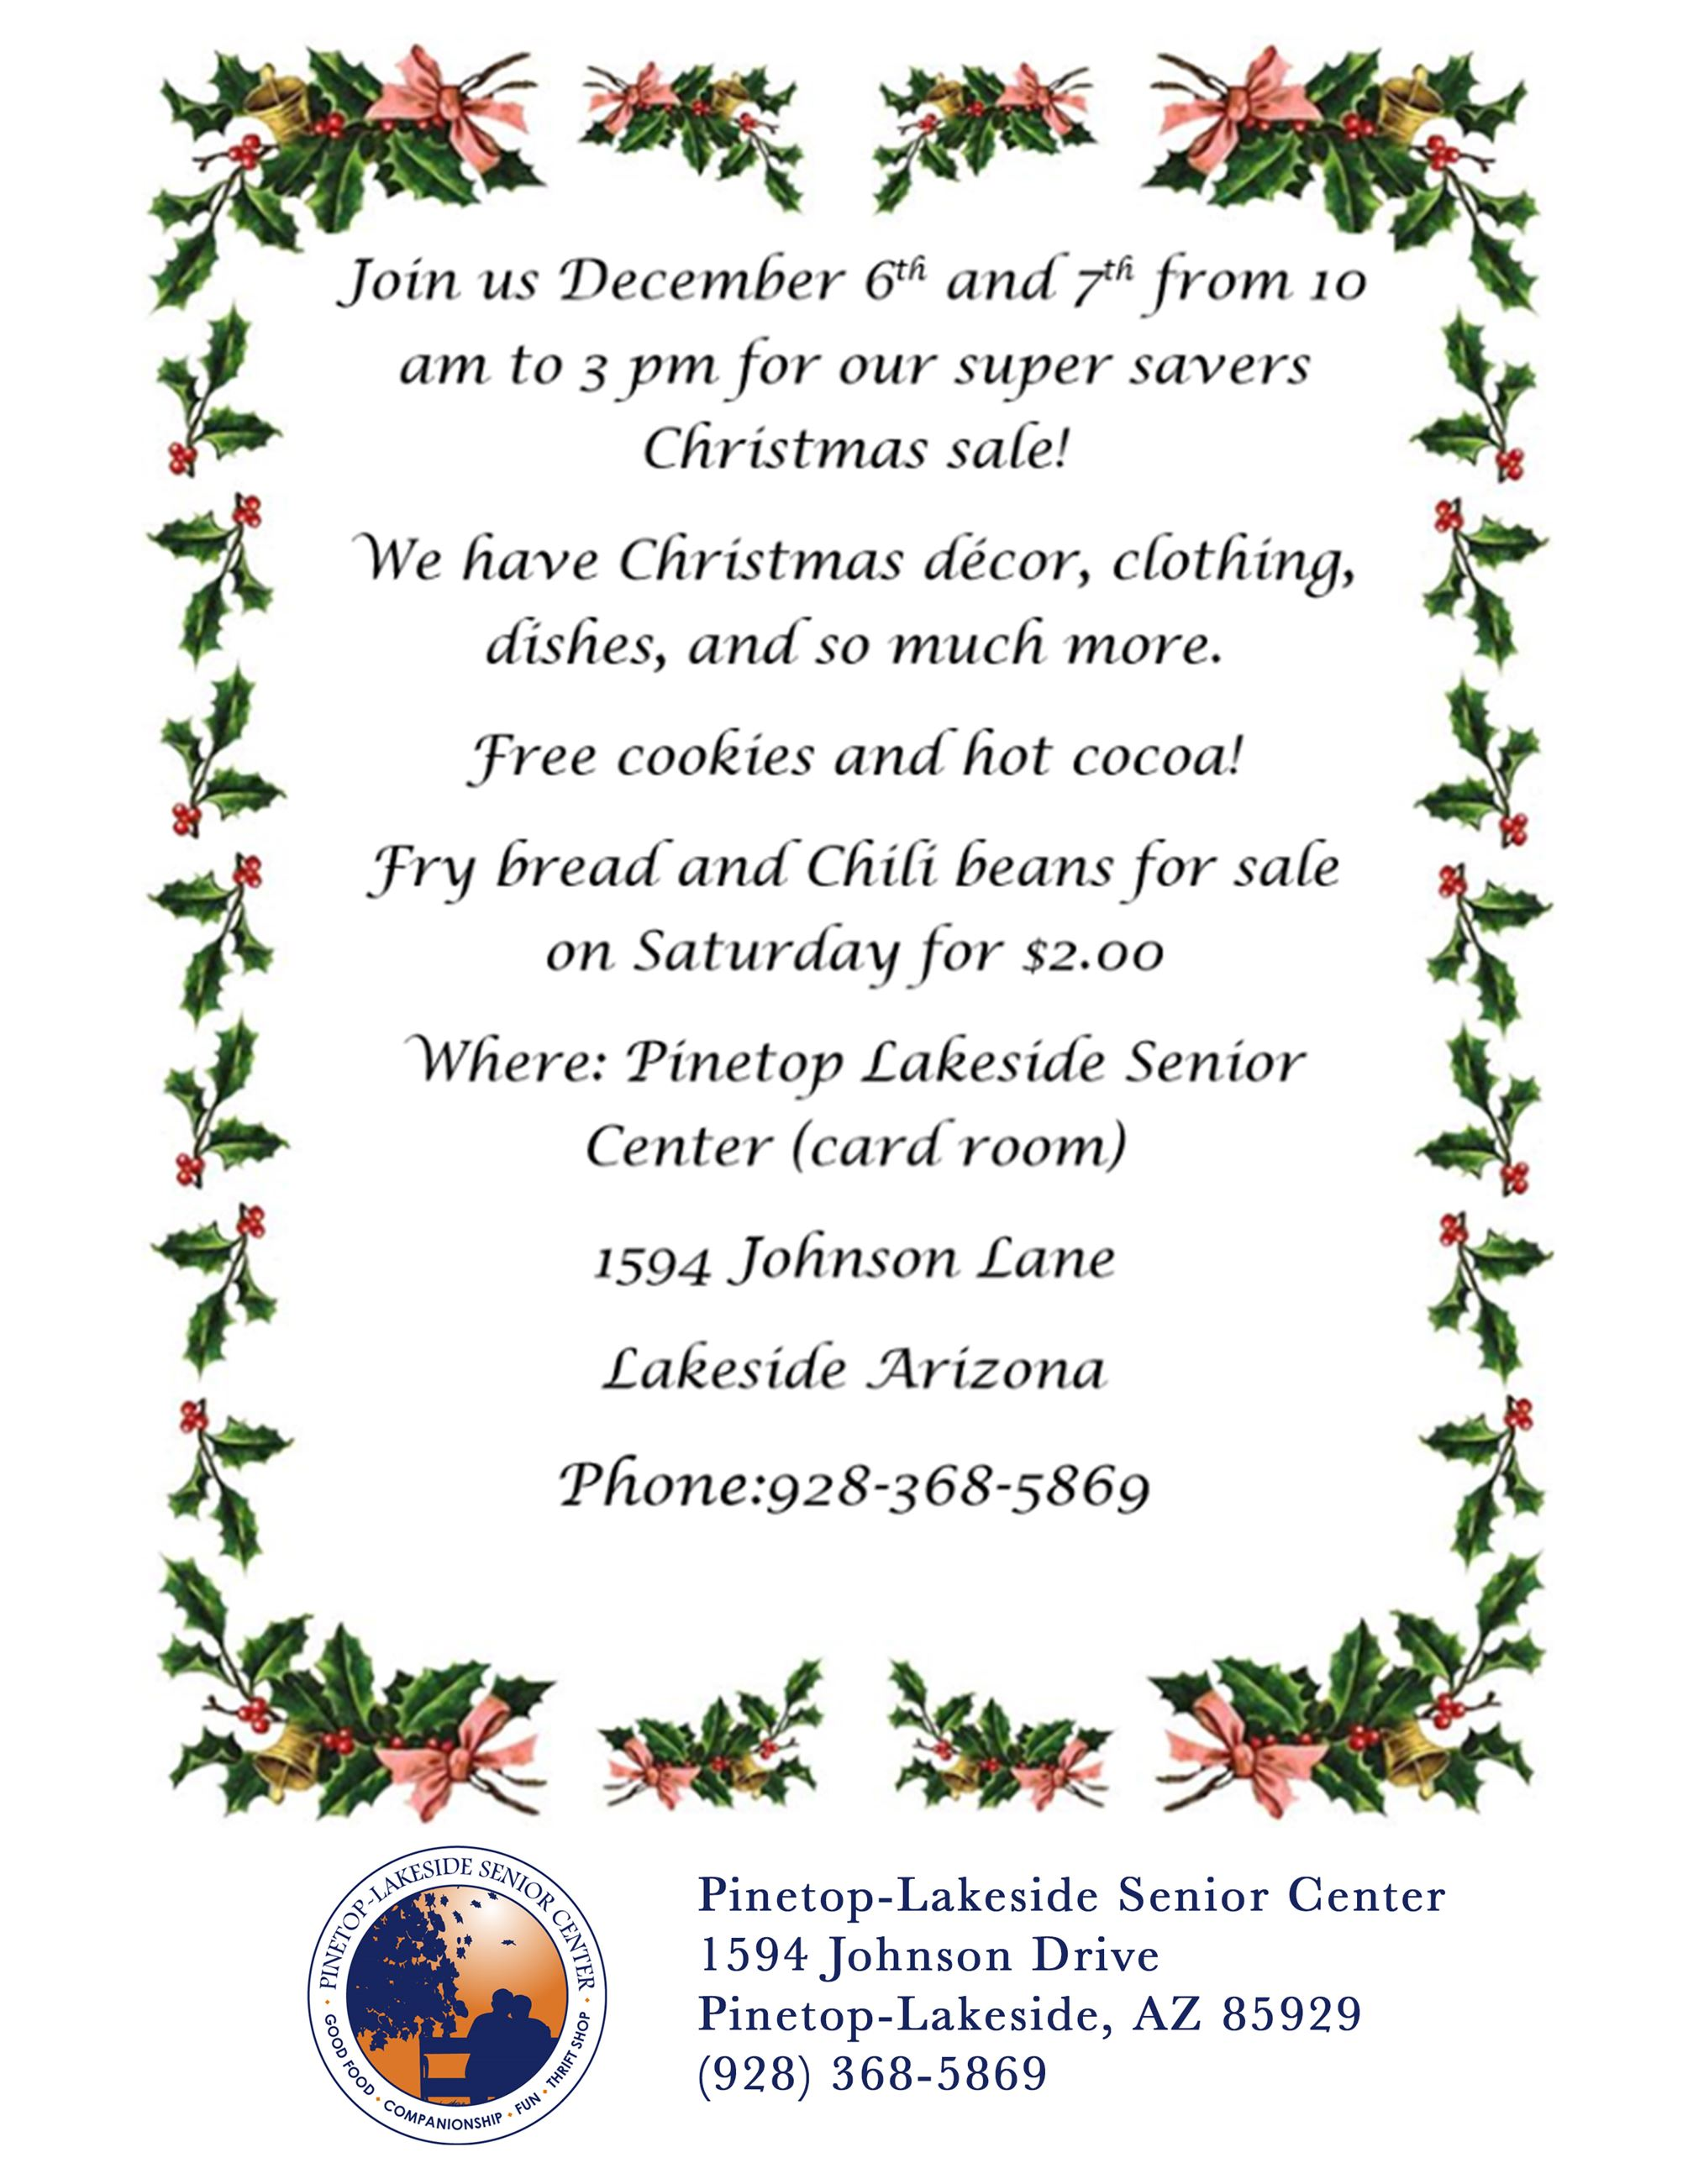 Senior Center Cmas Sale